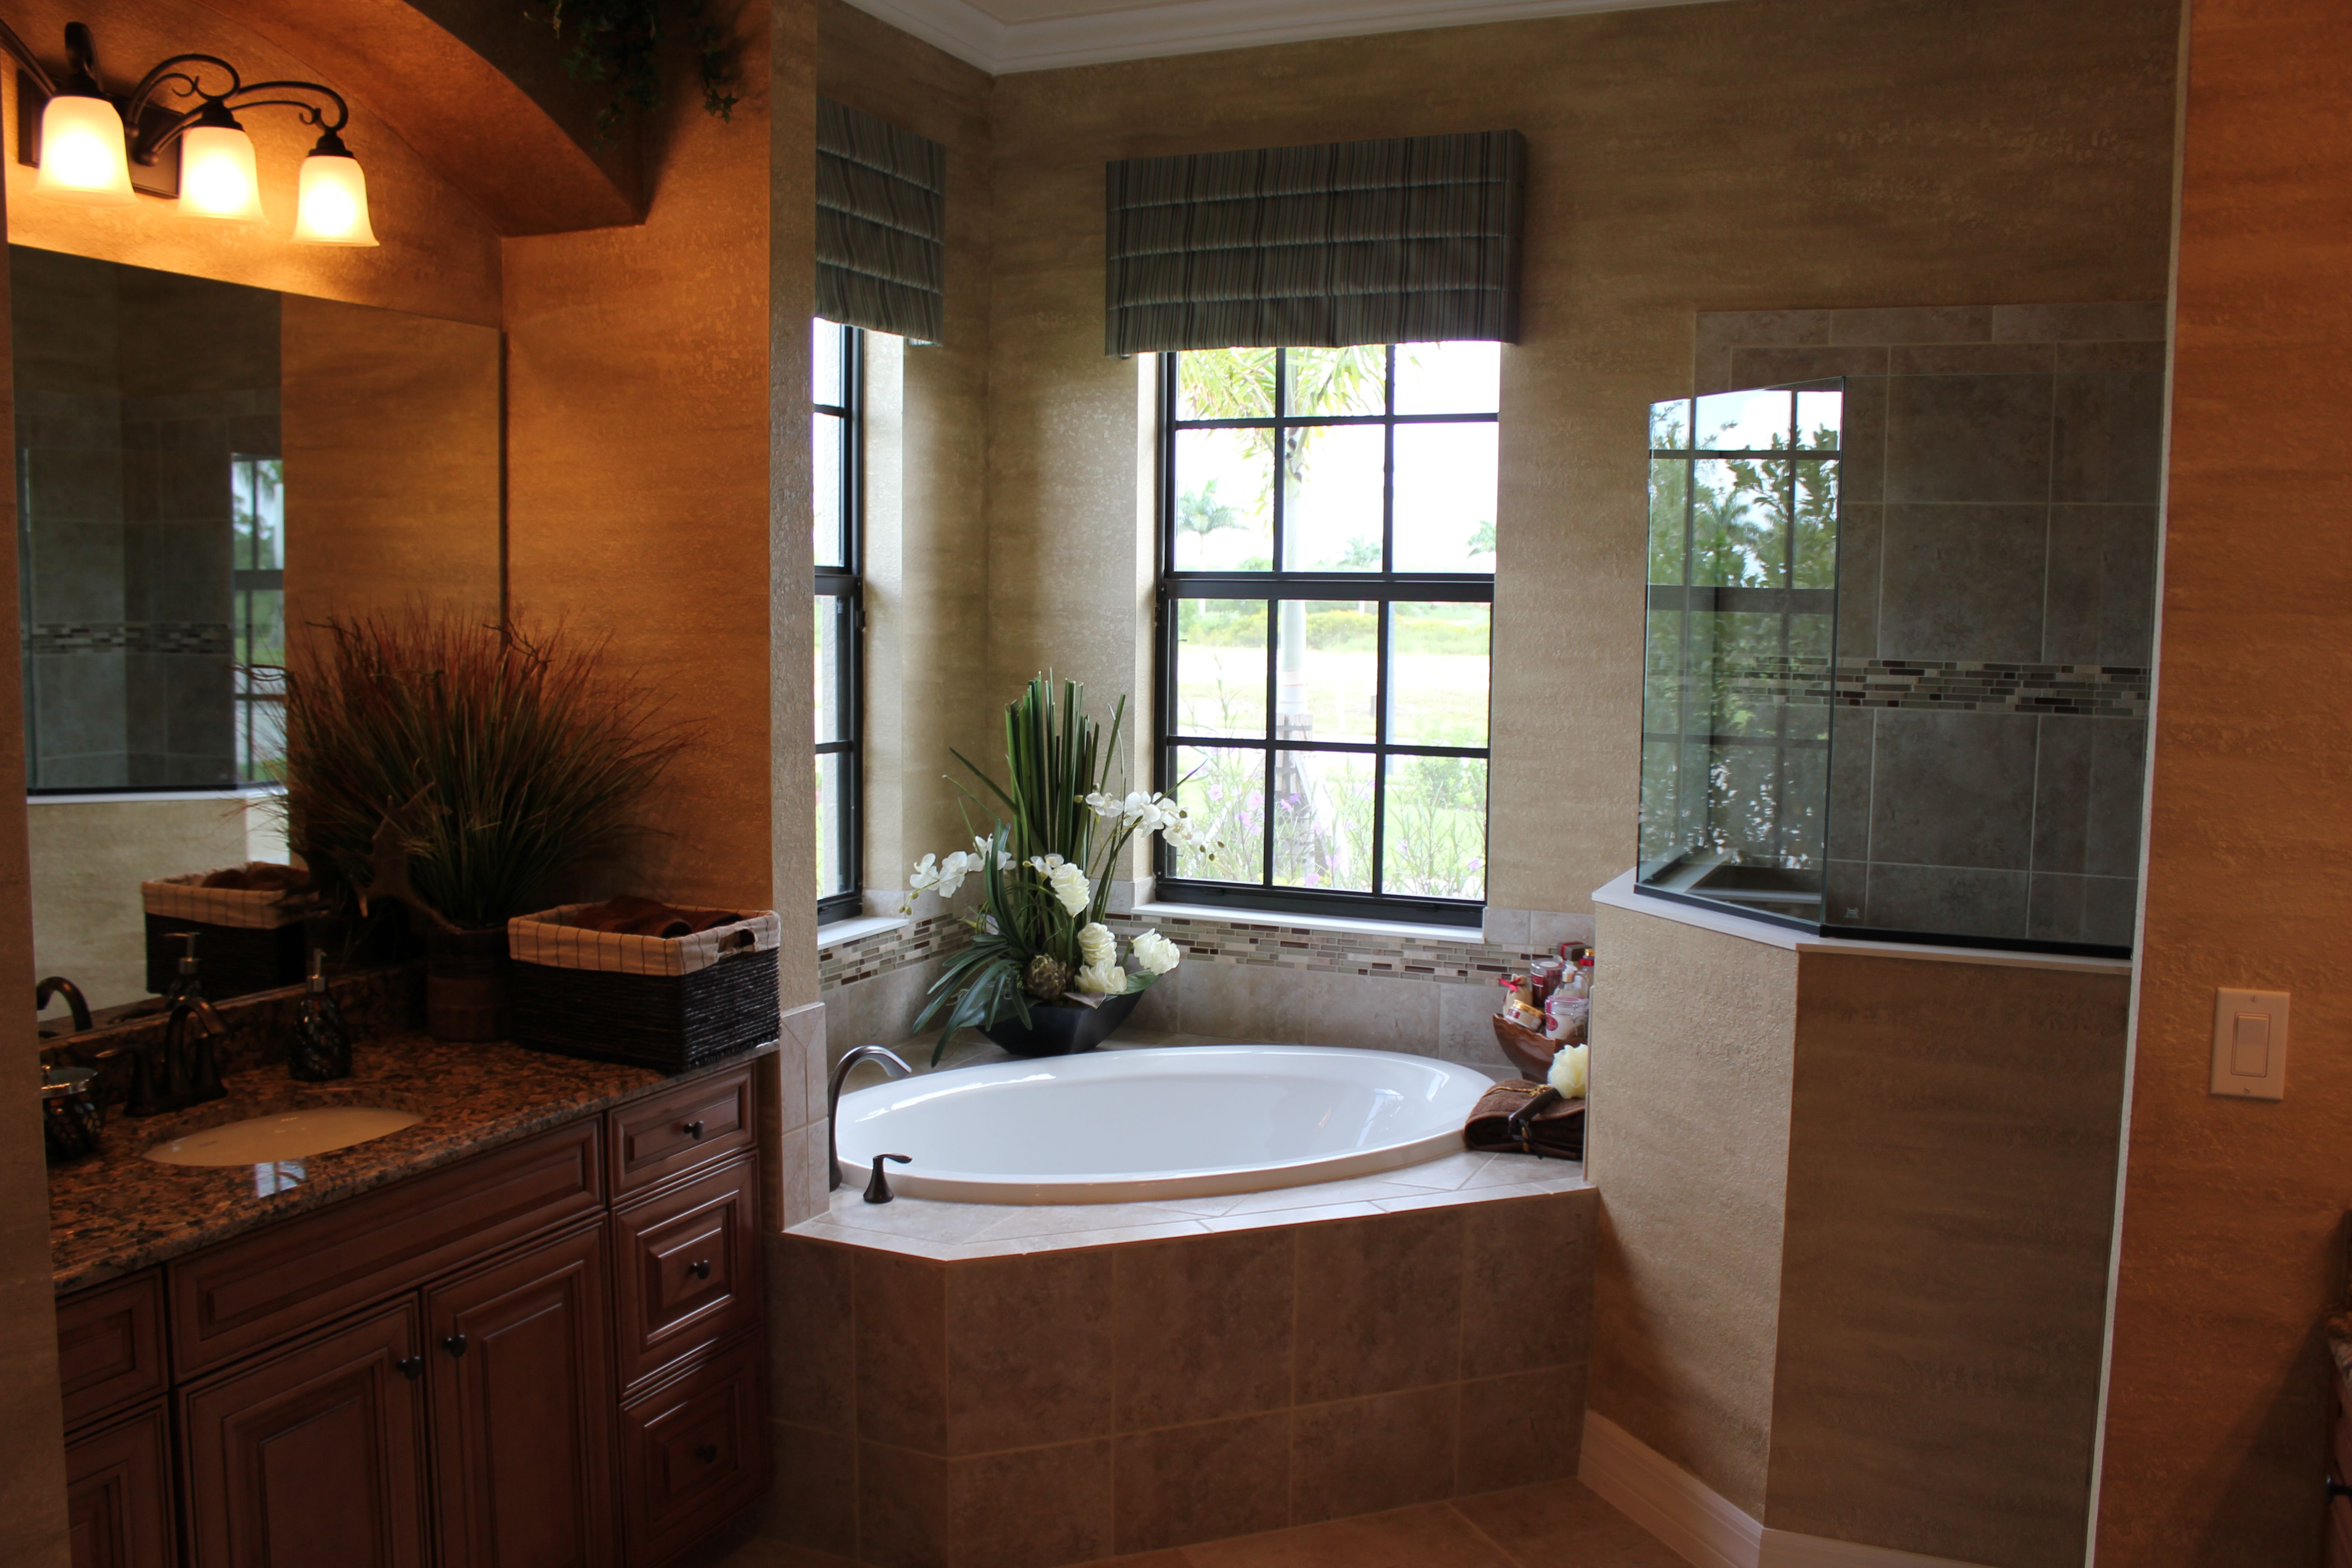 Lennar homes heritage bay naples fl master bathrooom for Bath remodel naples fl